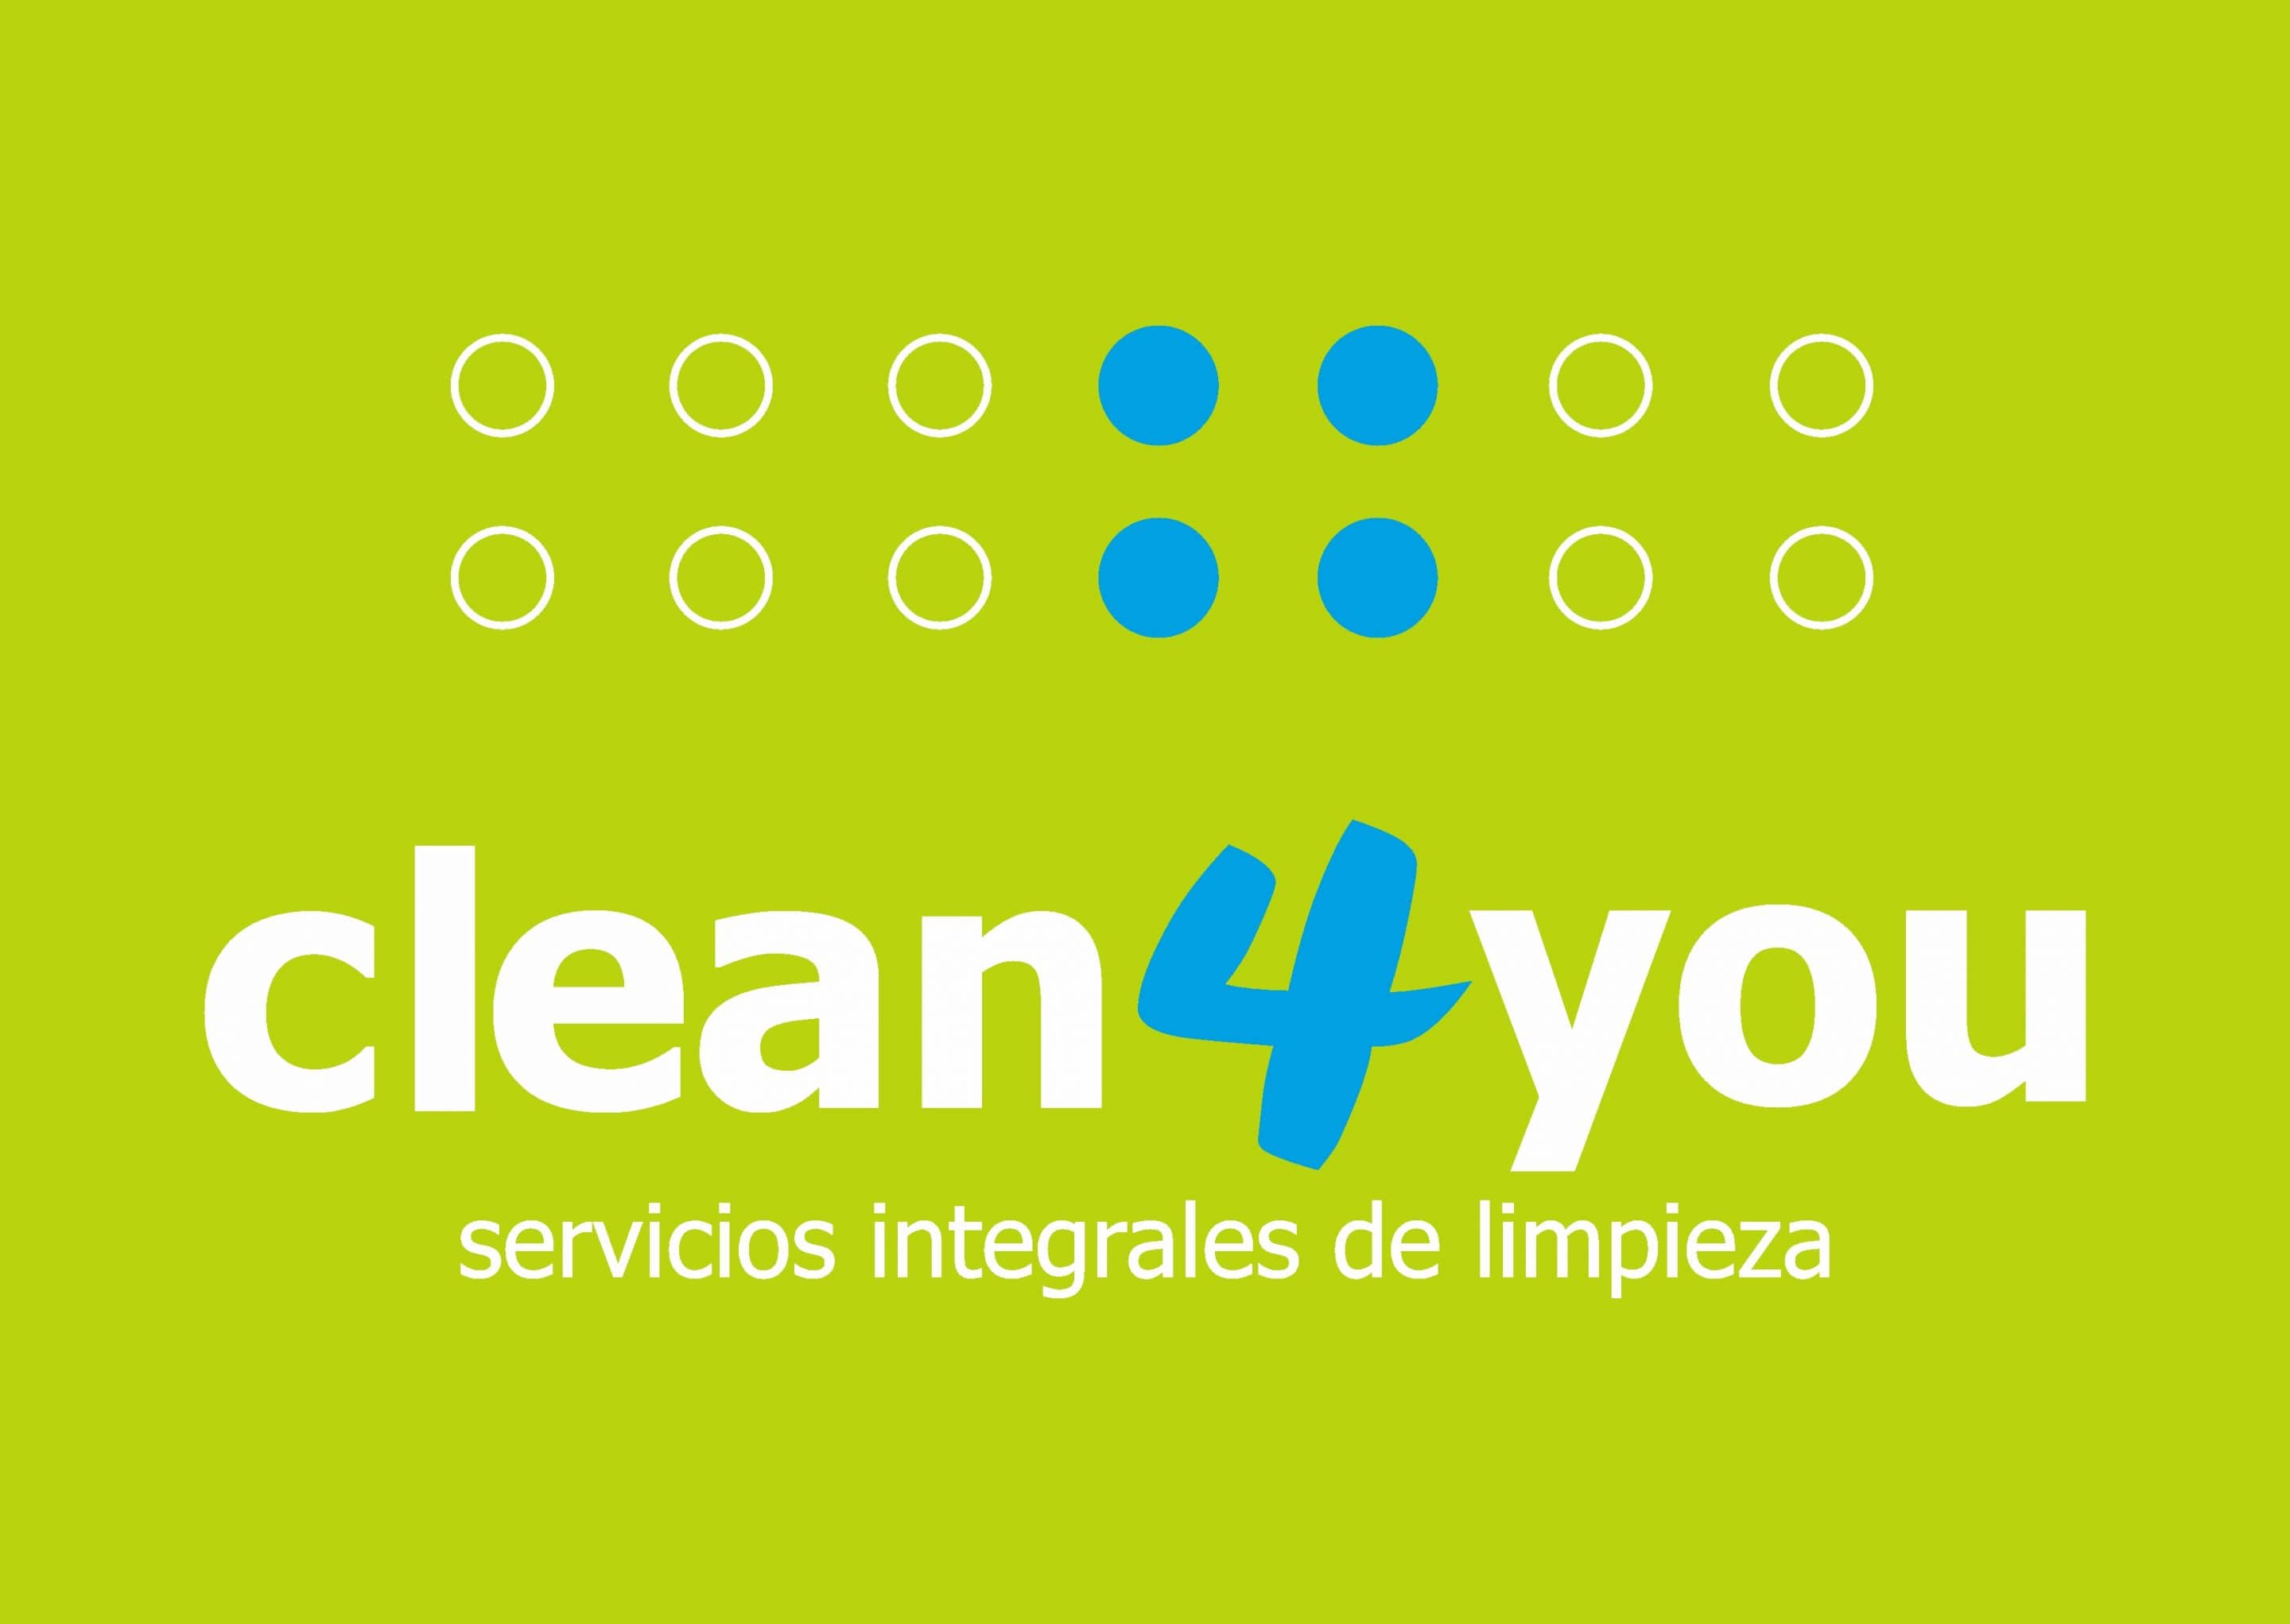 logo clean4you